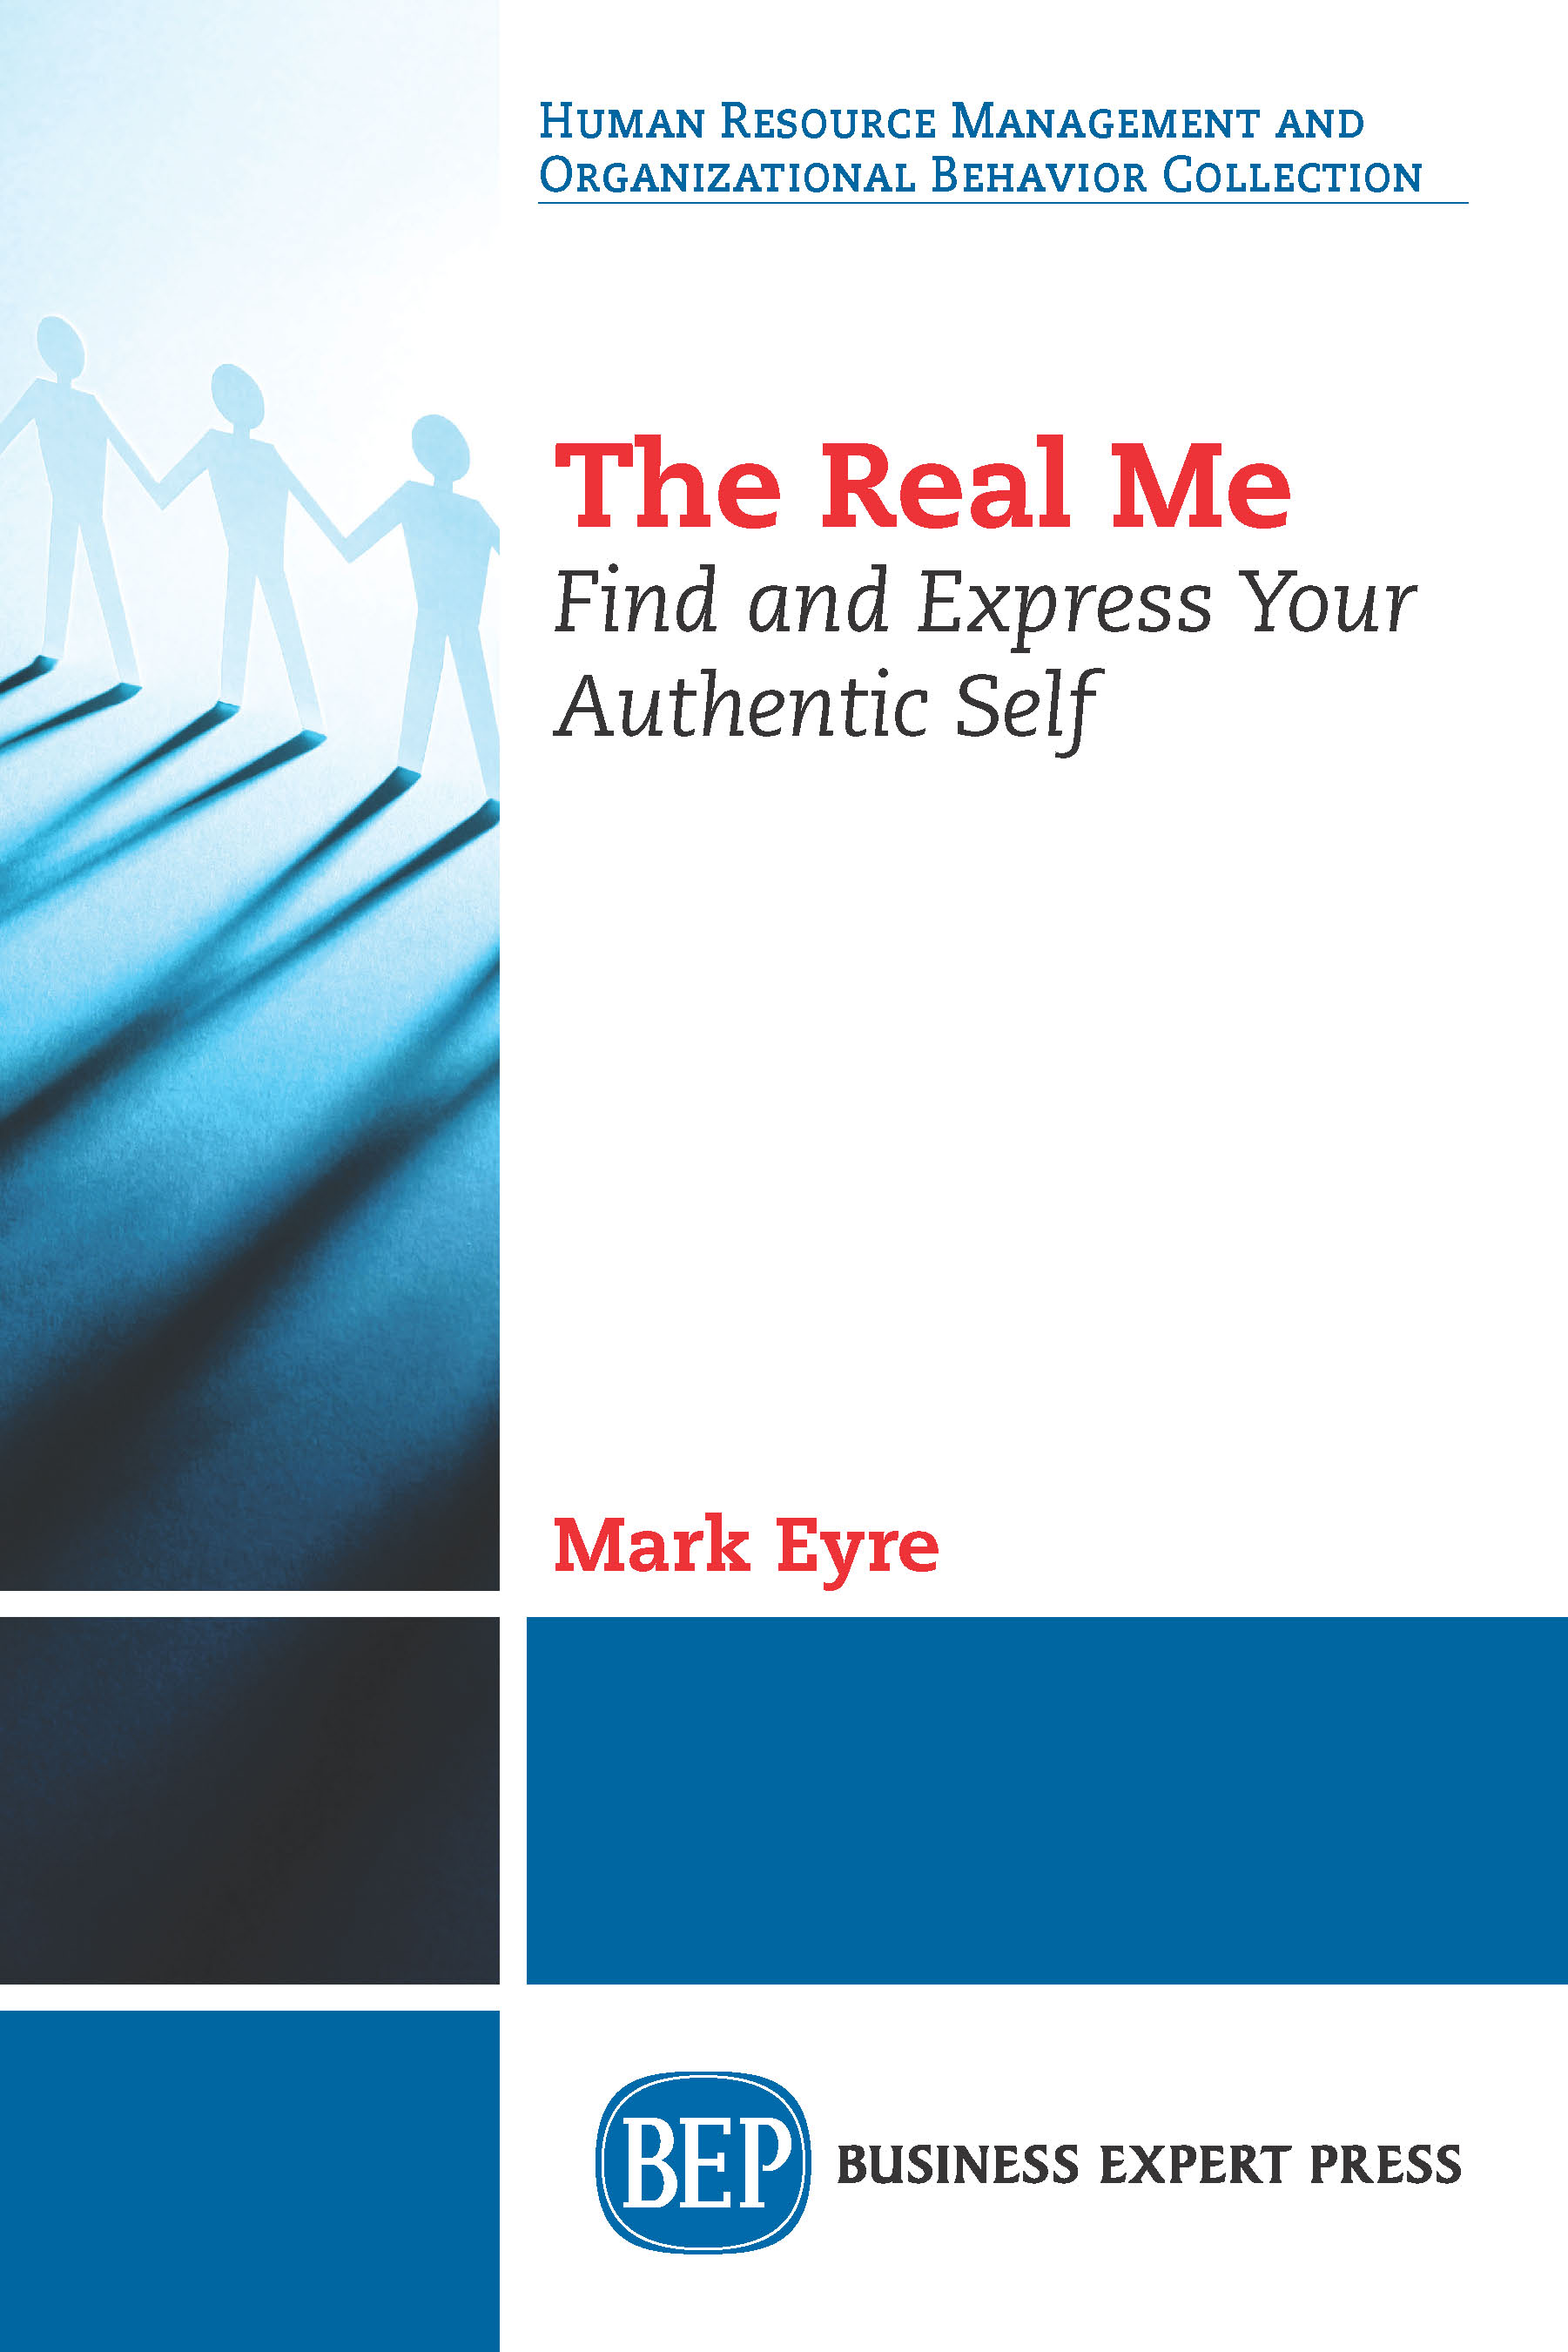 Download Ebook The Real Me by Mark Eyre Pdf